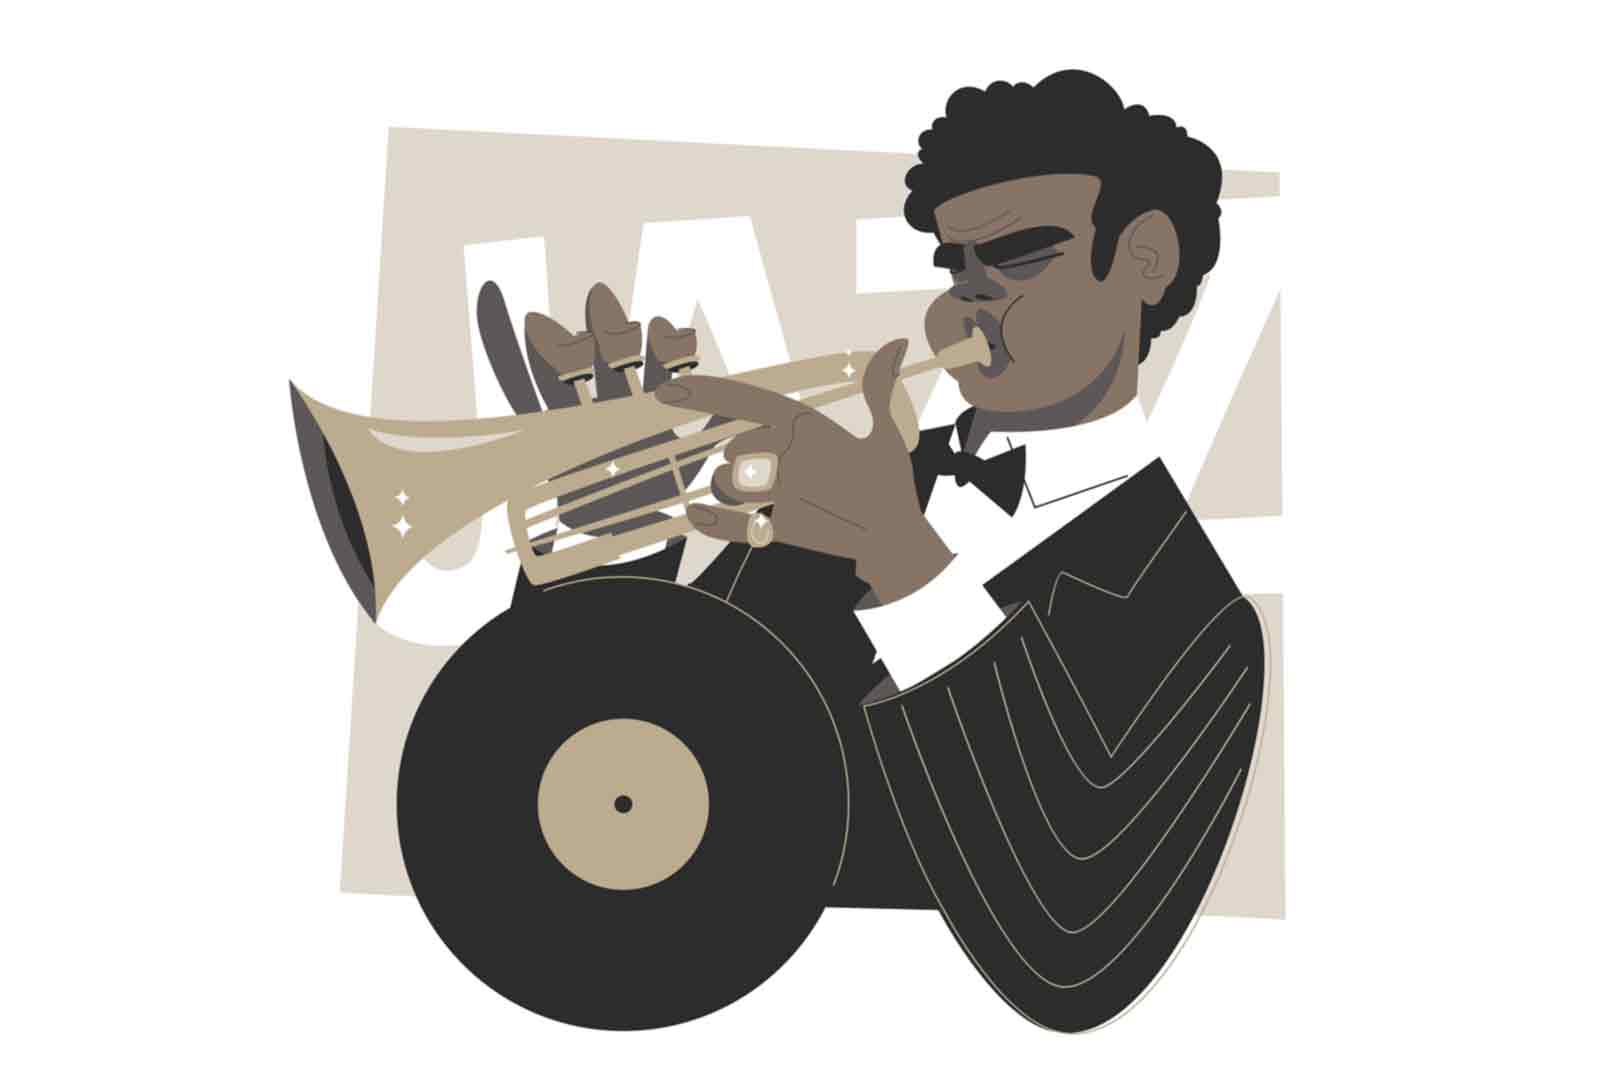 Afro american trumpet player vector illustration. Black man improvises on musical instrument flat style. Jazz and blues music style concept. Isolated on white background